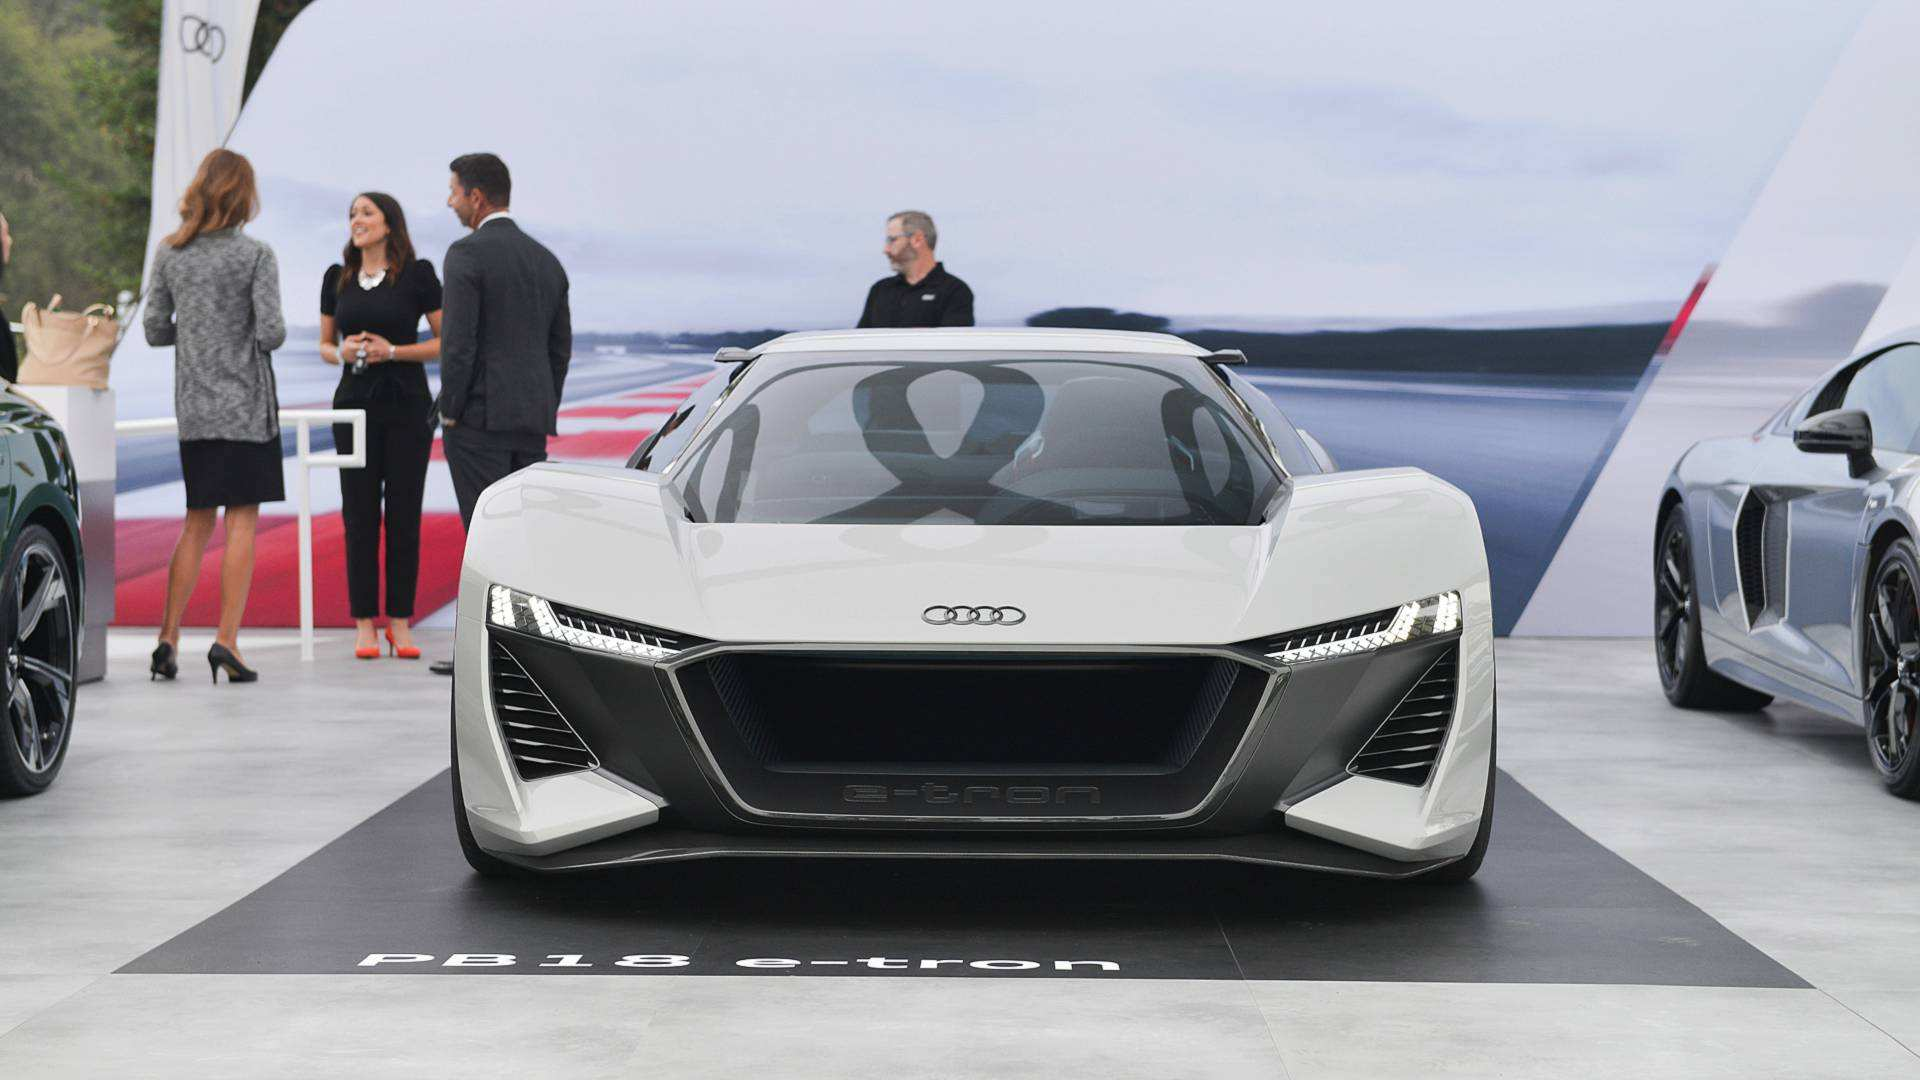 55 New Audi Concept 2020 Performance with Audi Concept 2020